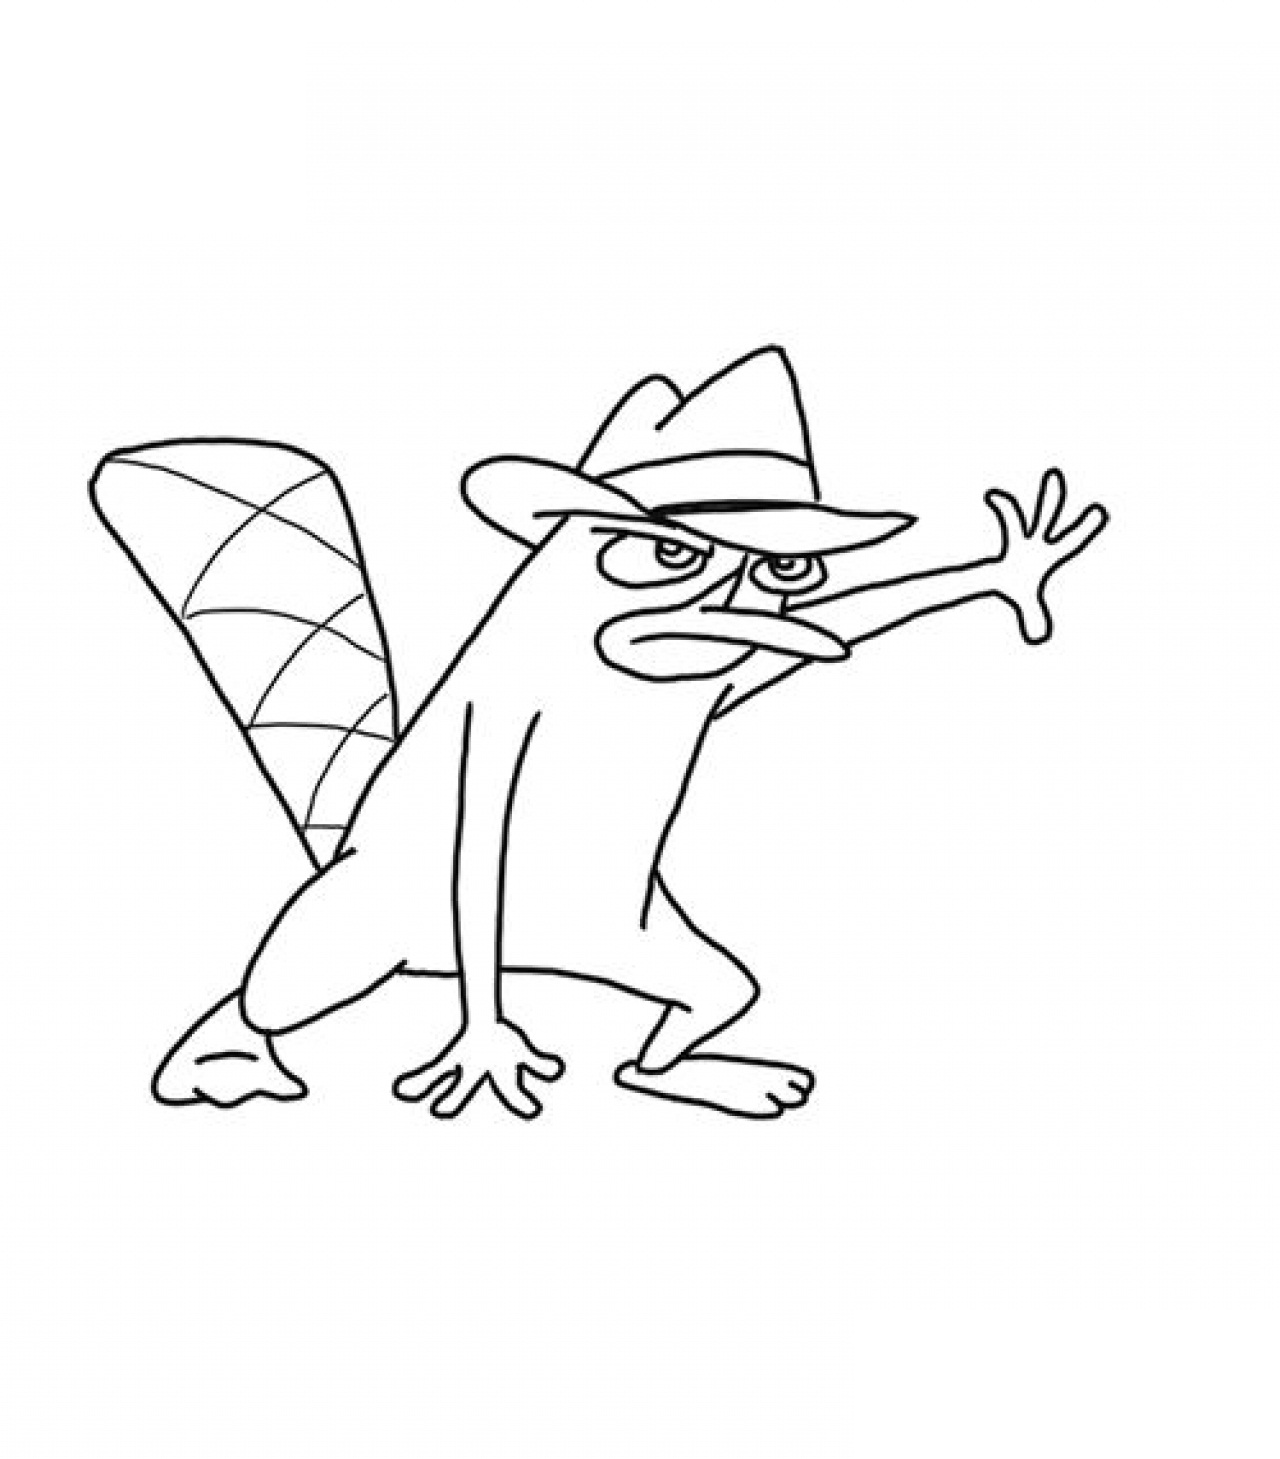 perry the platypus coloring pages getcoloringpages image versions